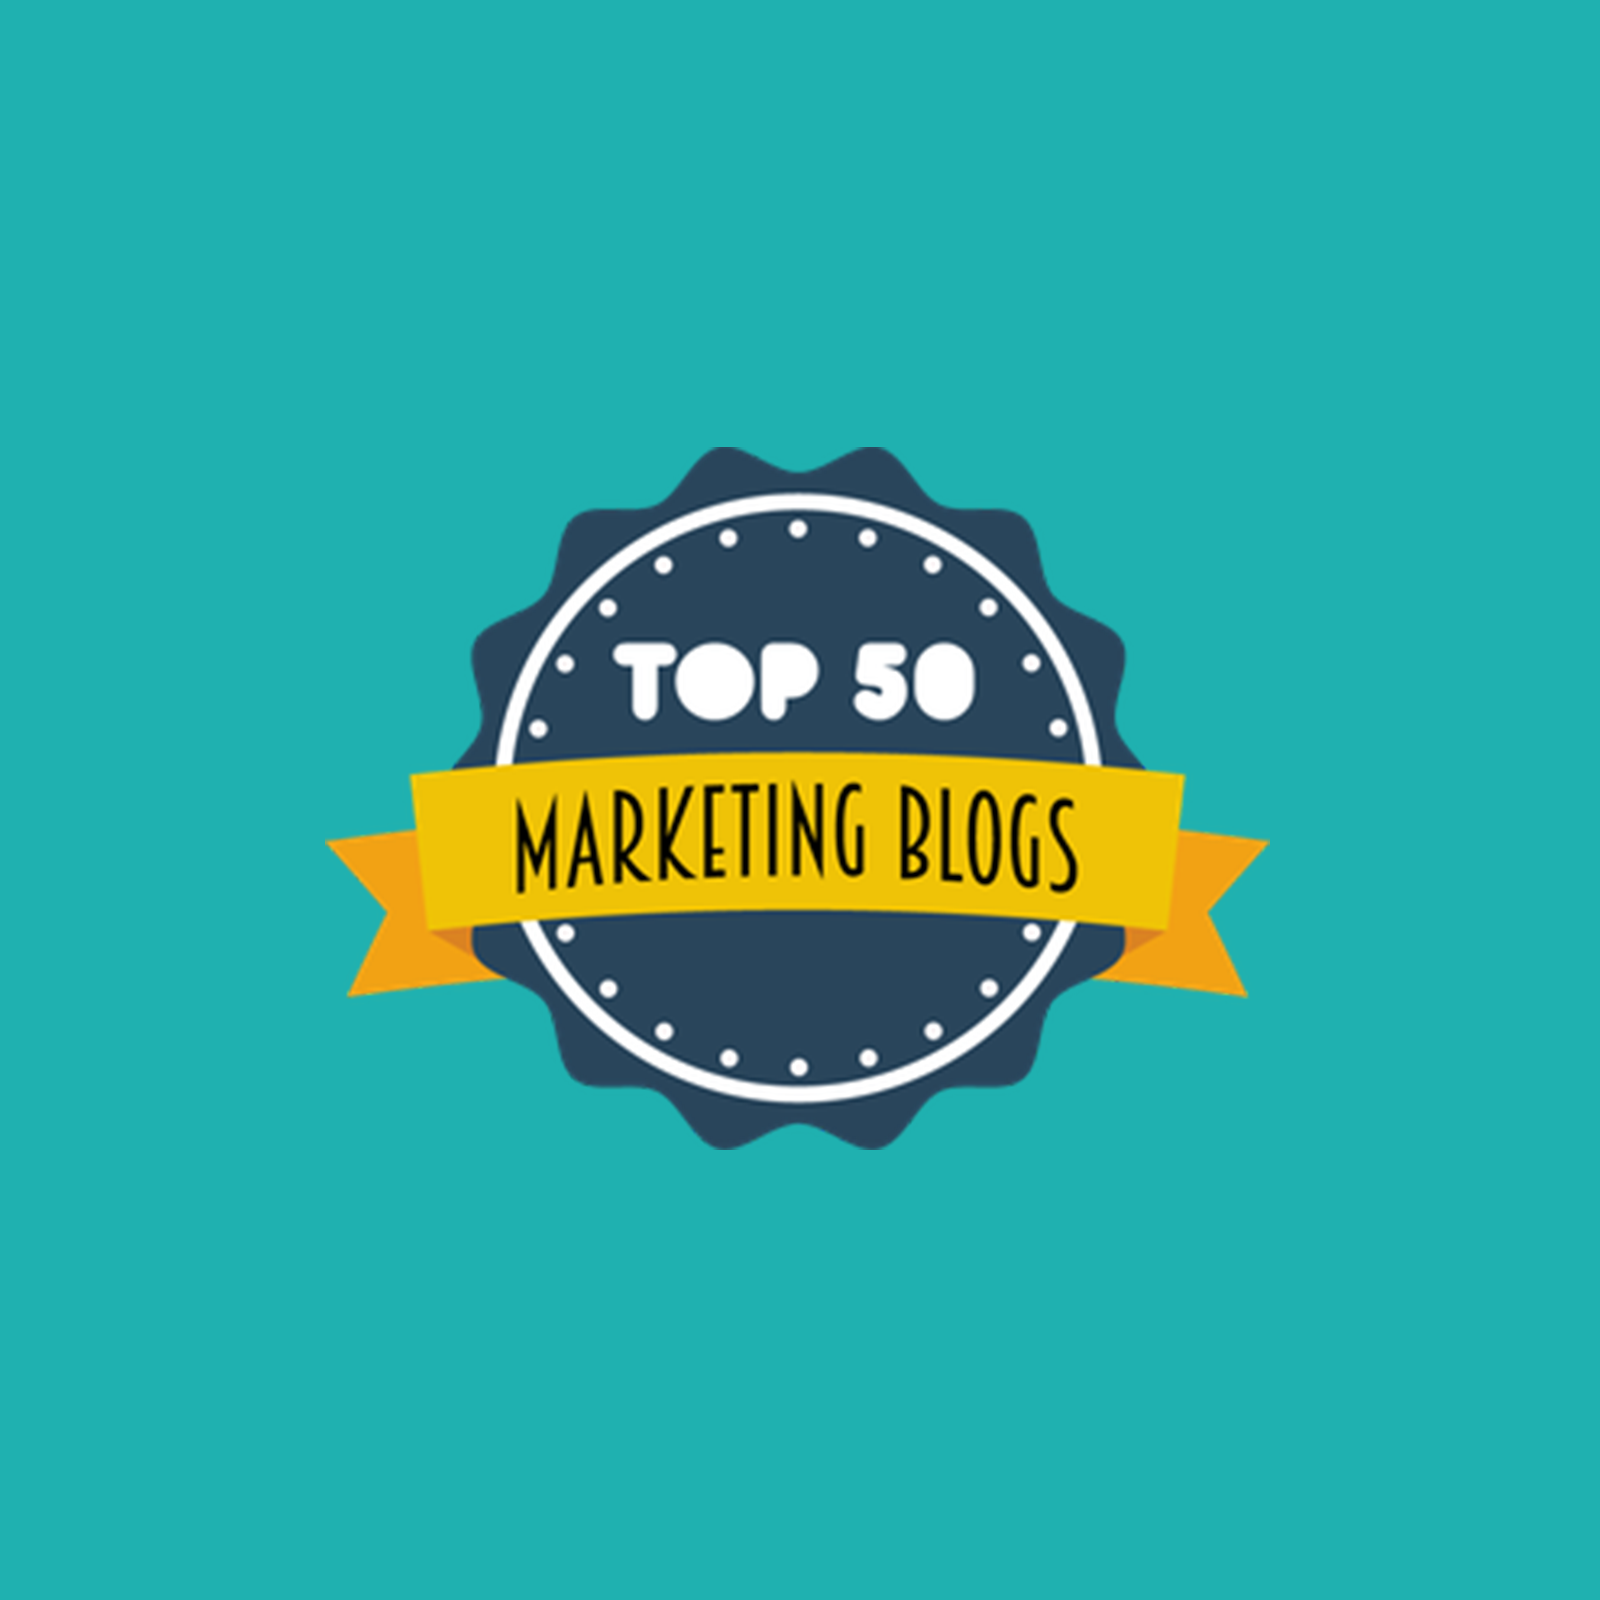 Top 50 Marketing Blogs